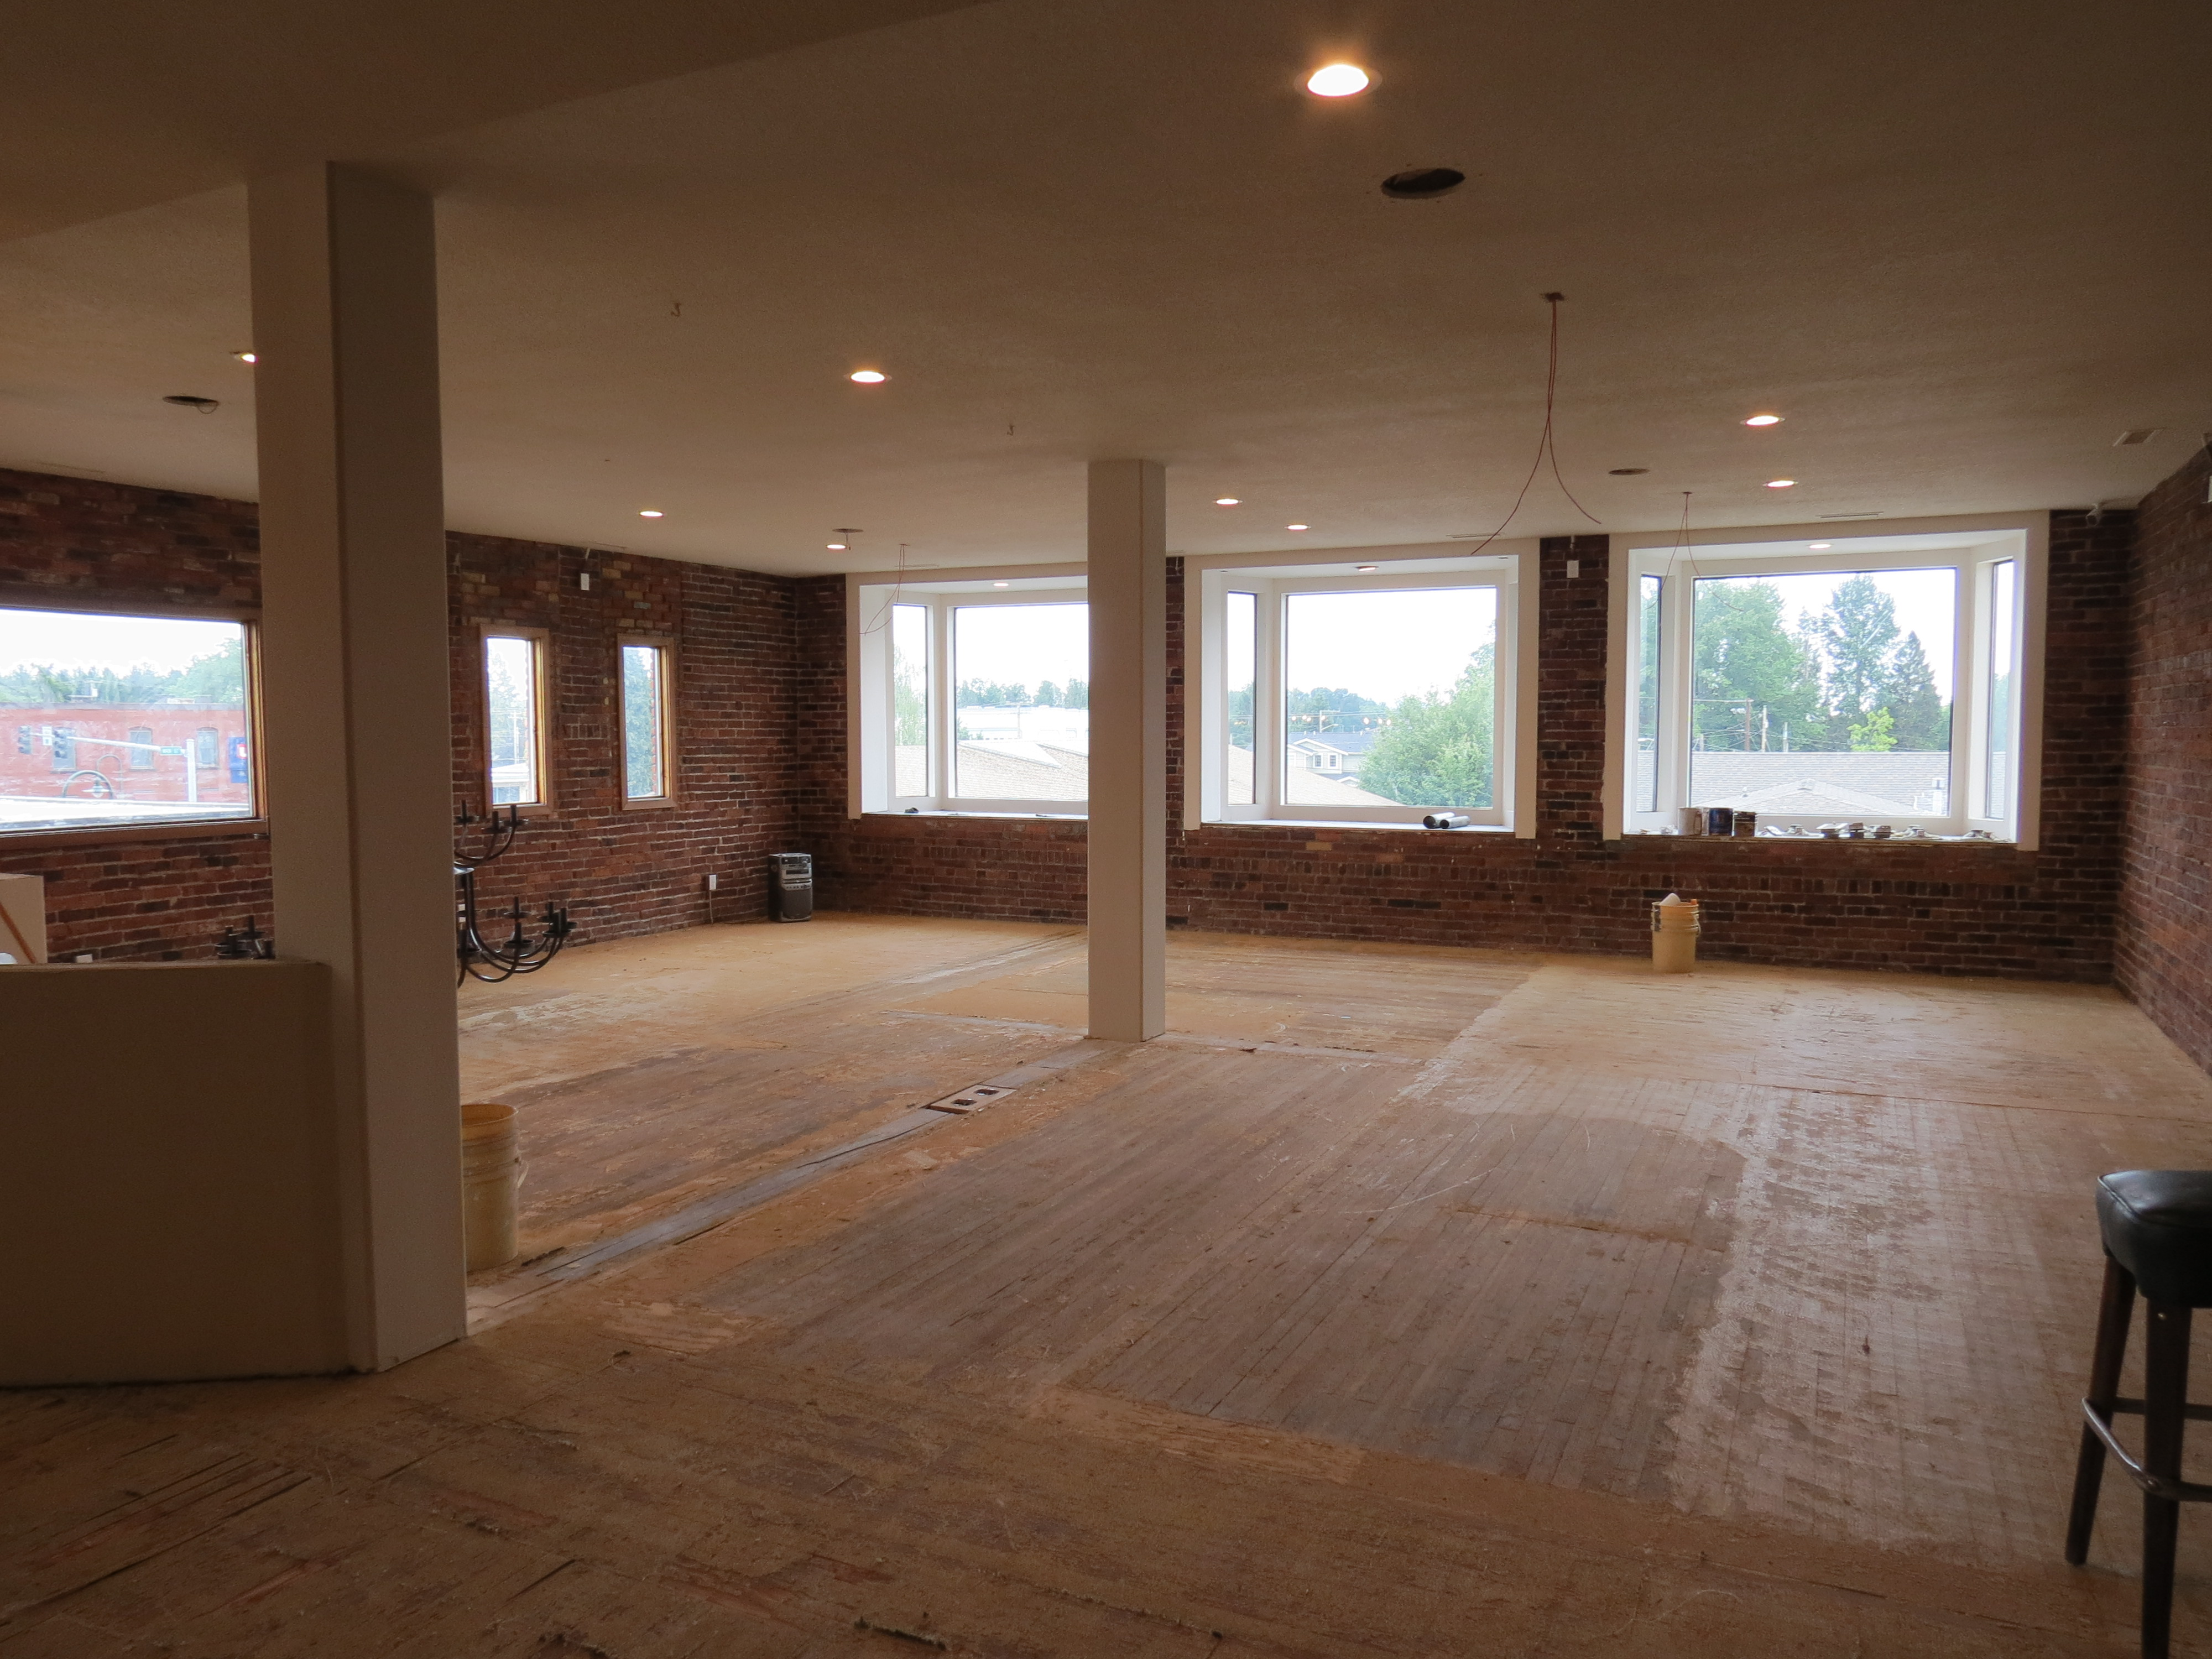 Remodeling underway at 2038 Main Street in preparation for opening a new restaurant (July 3, 2019). Photo: My Ferndale News